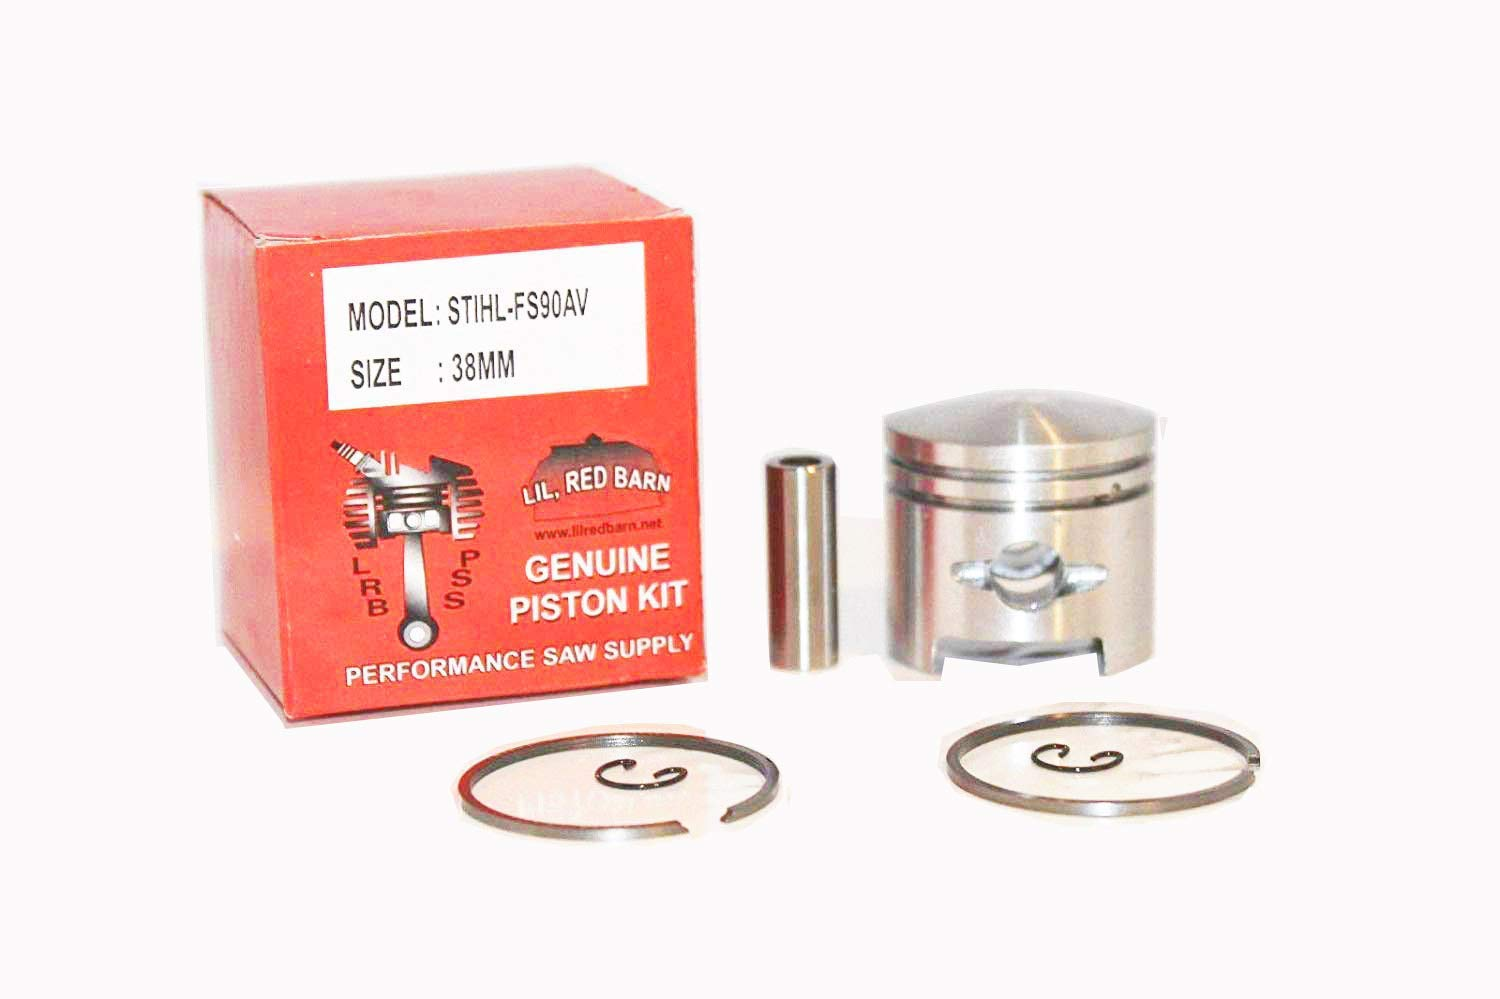 Lil Red Barn Stihl Fs90, Fs96 Piston Kit 38mm, Replaces Stihl Part # 4117-034-0500 Quality Tooling 2 Day Standard Shipping to All 50 States!